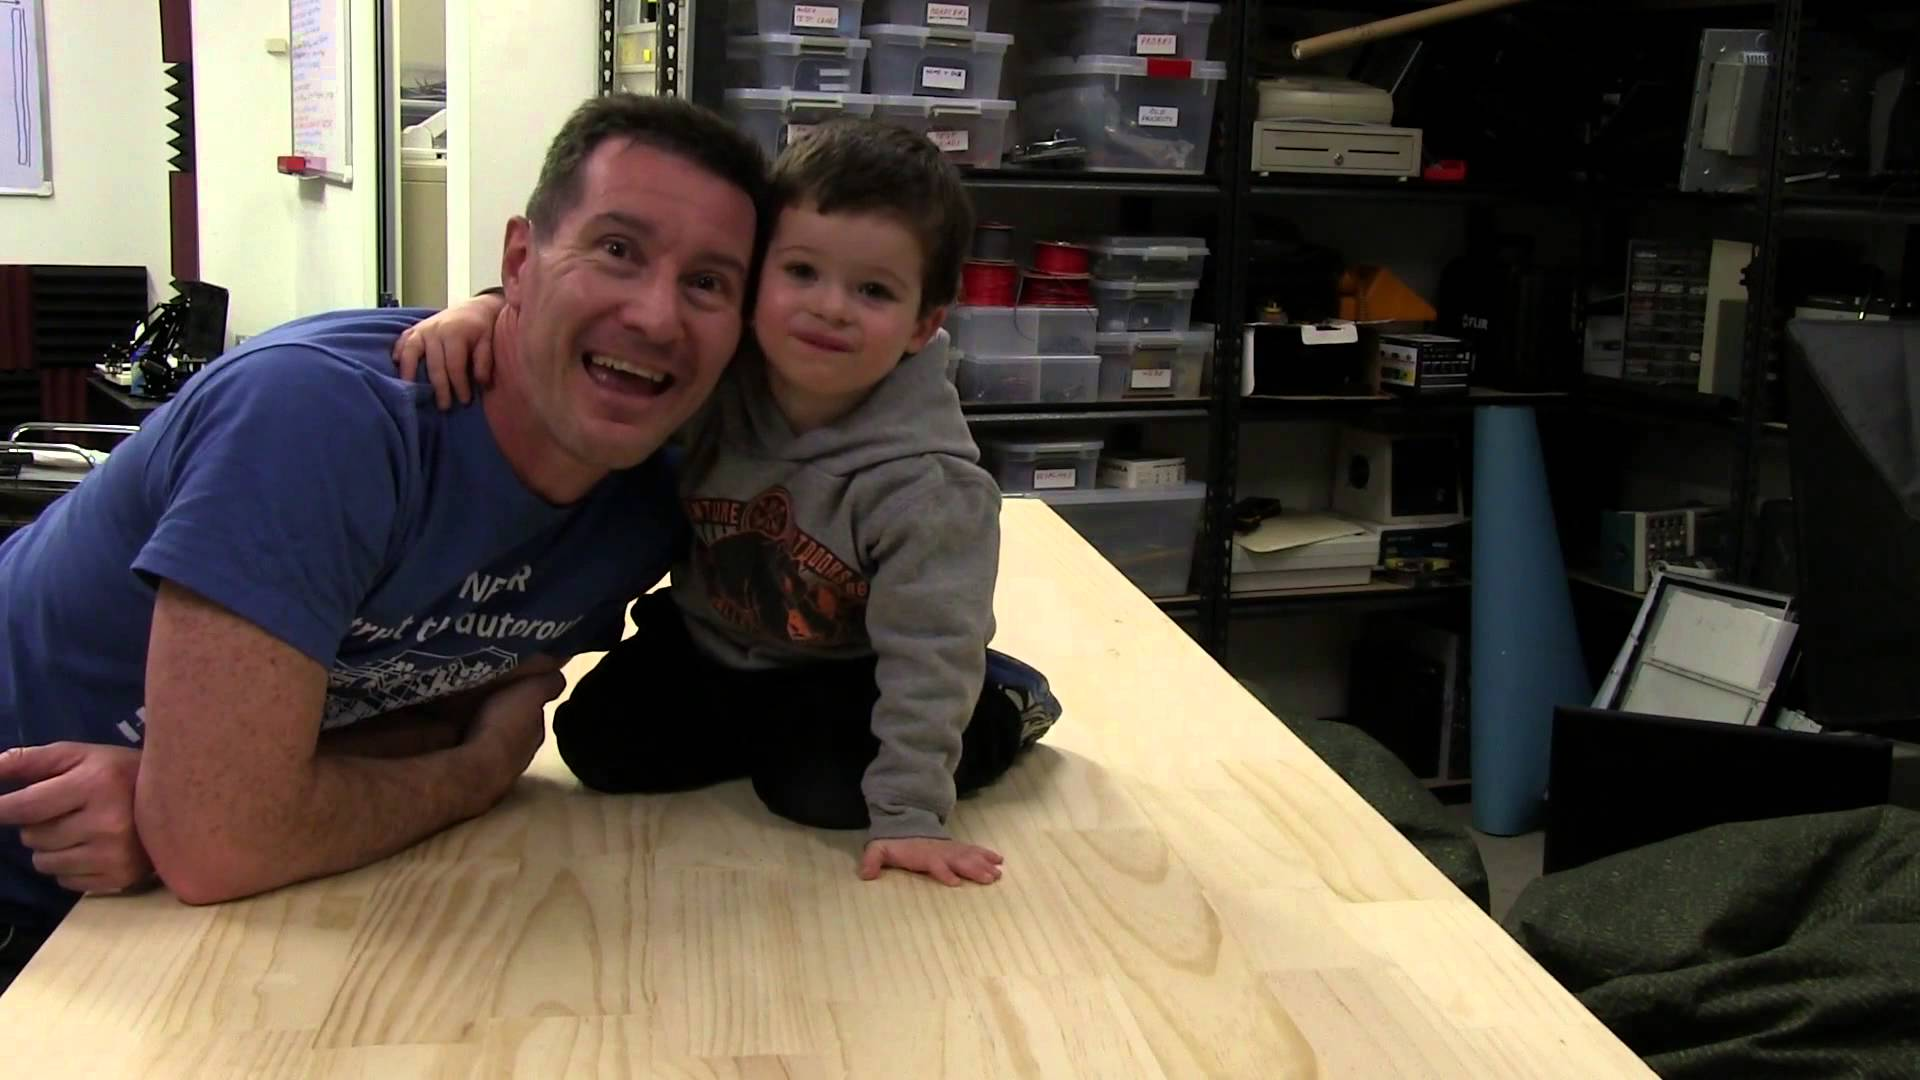 EEVblog #679 – How To Build A Small Electronics Work Bench